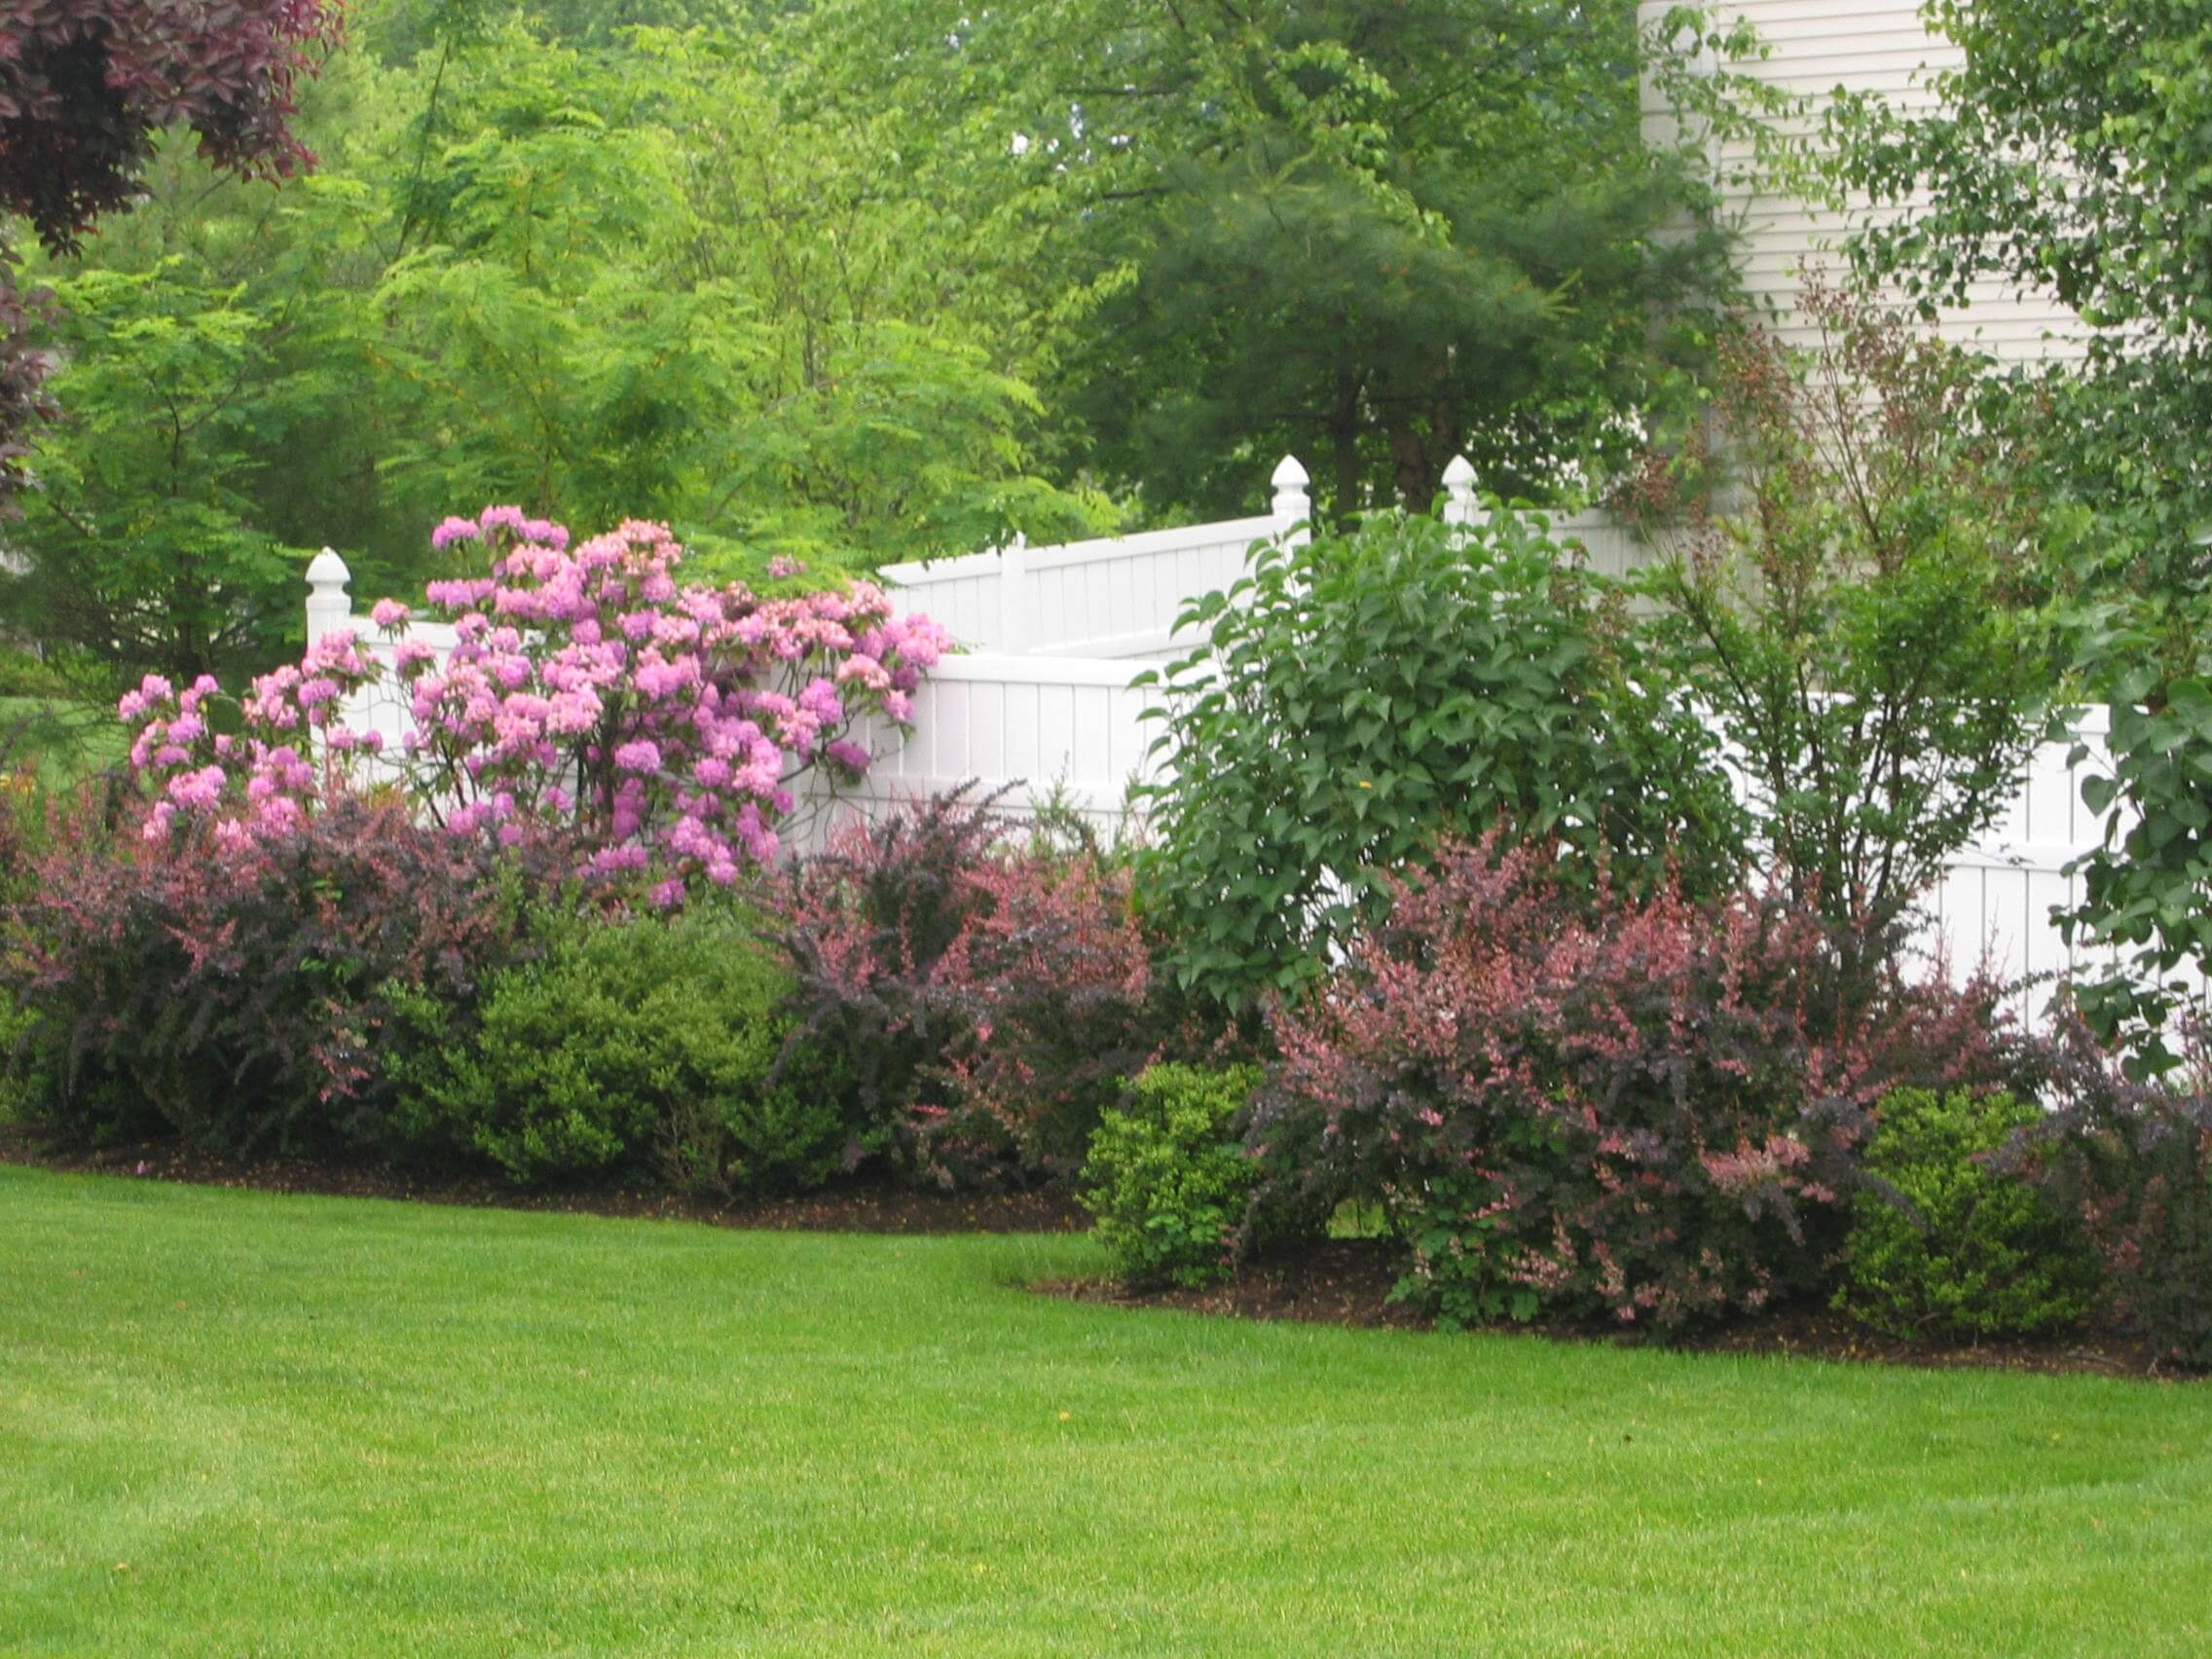 Feeding Your Plants & Lawn